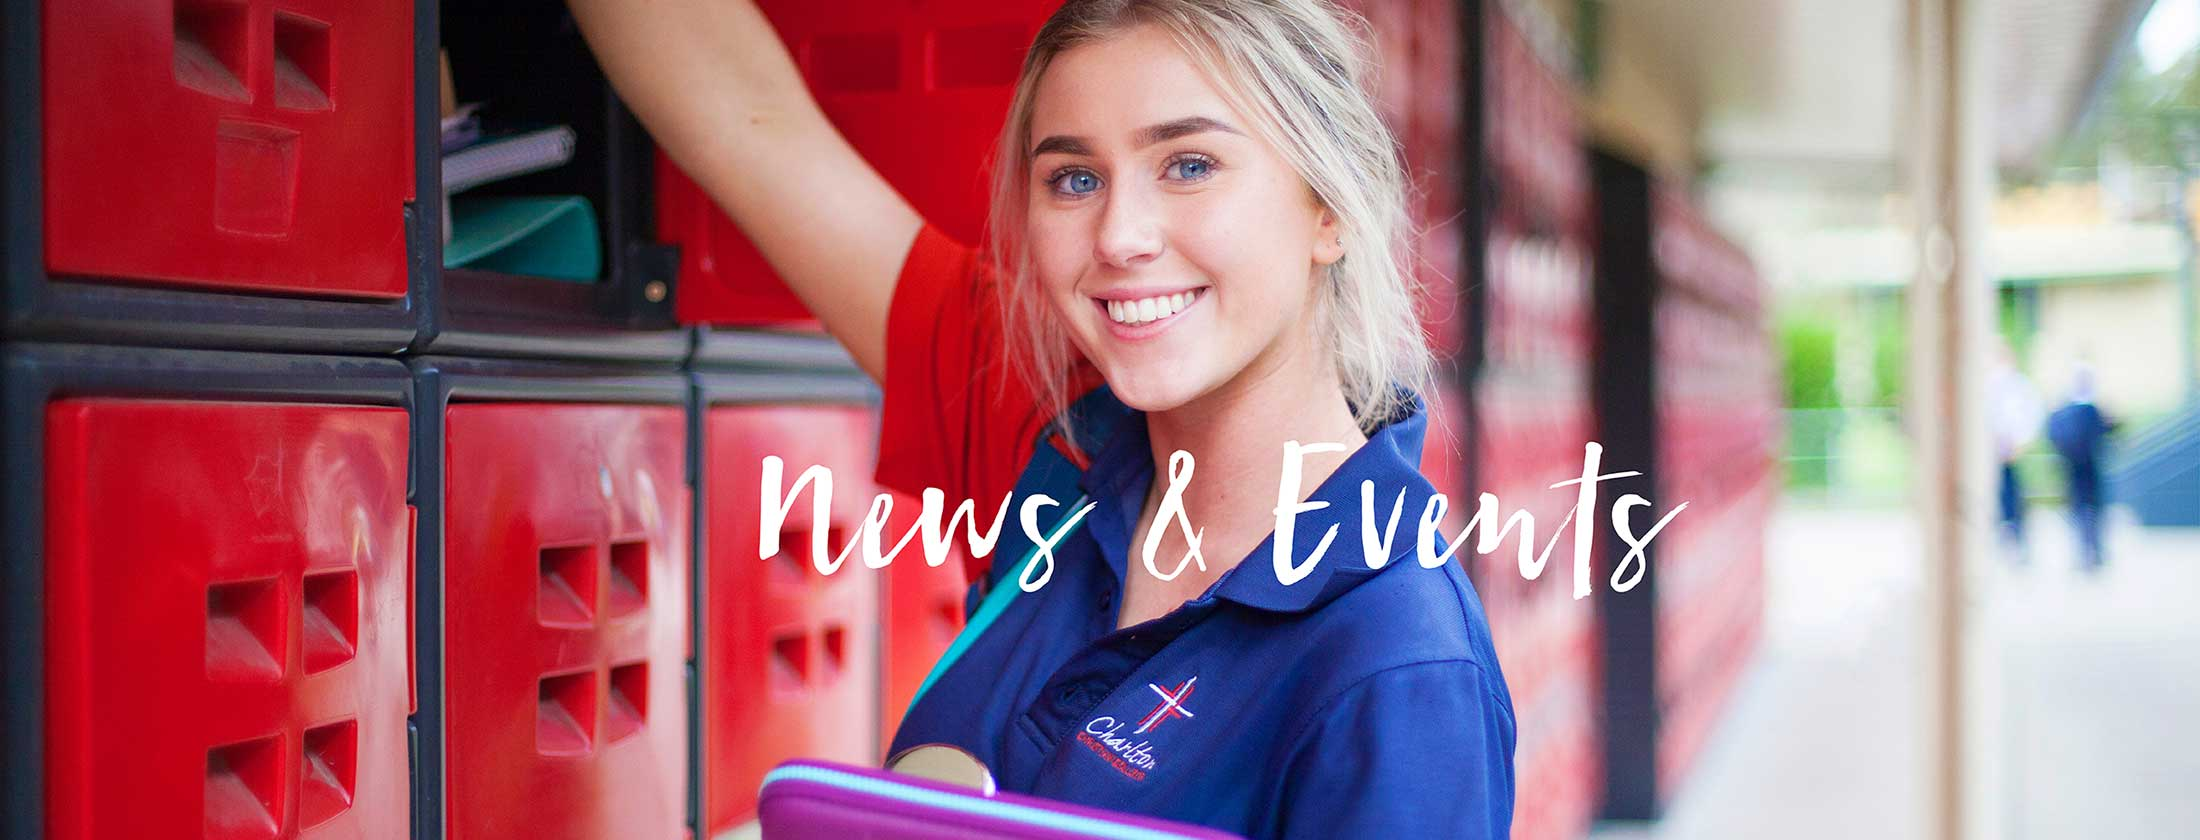 charlton christan college news and events